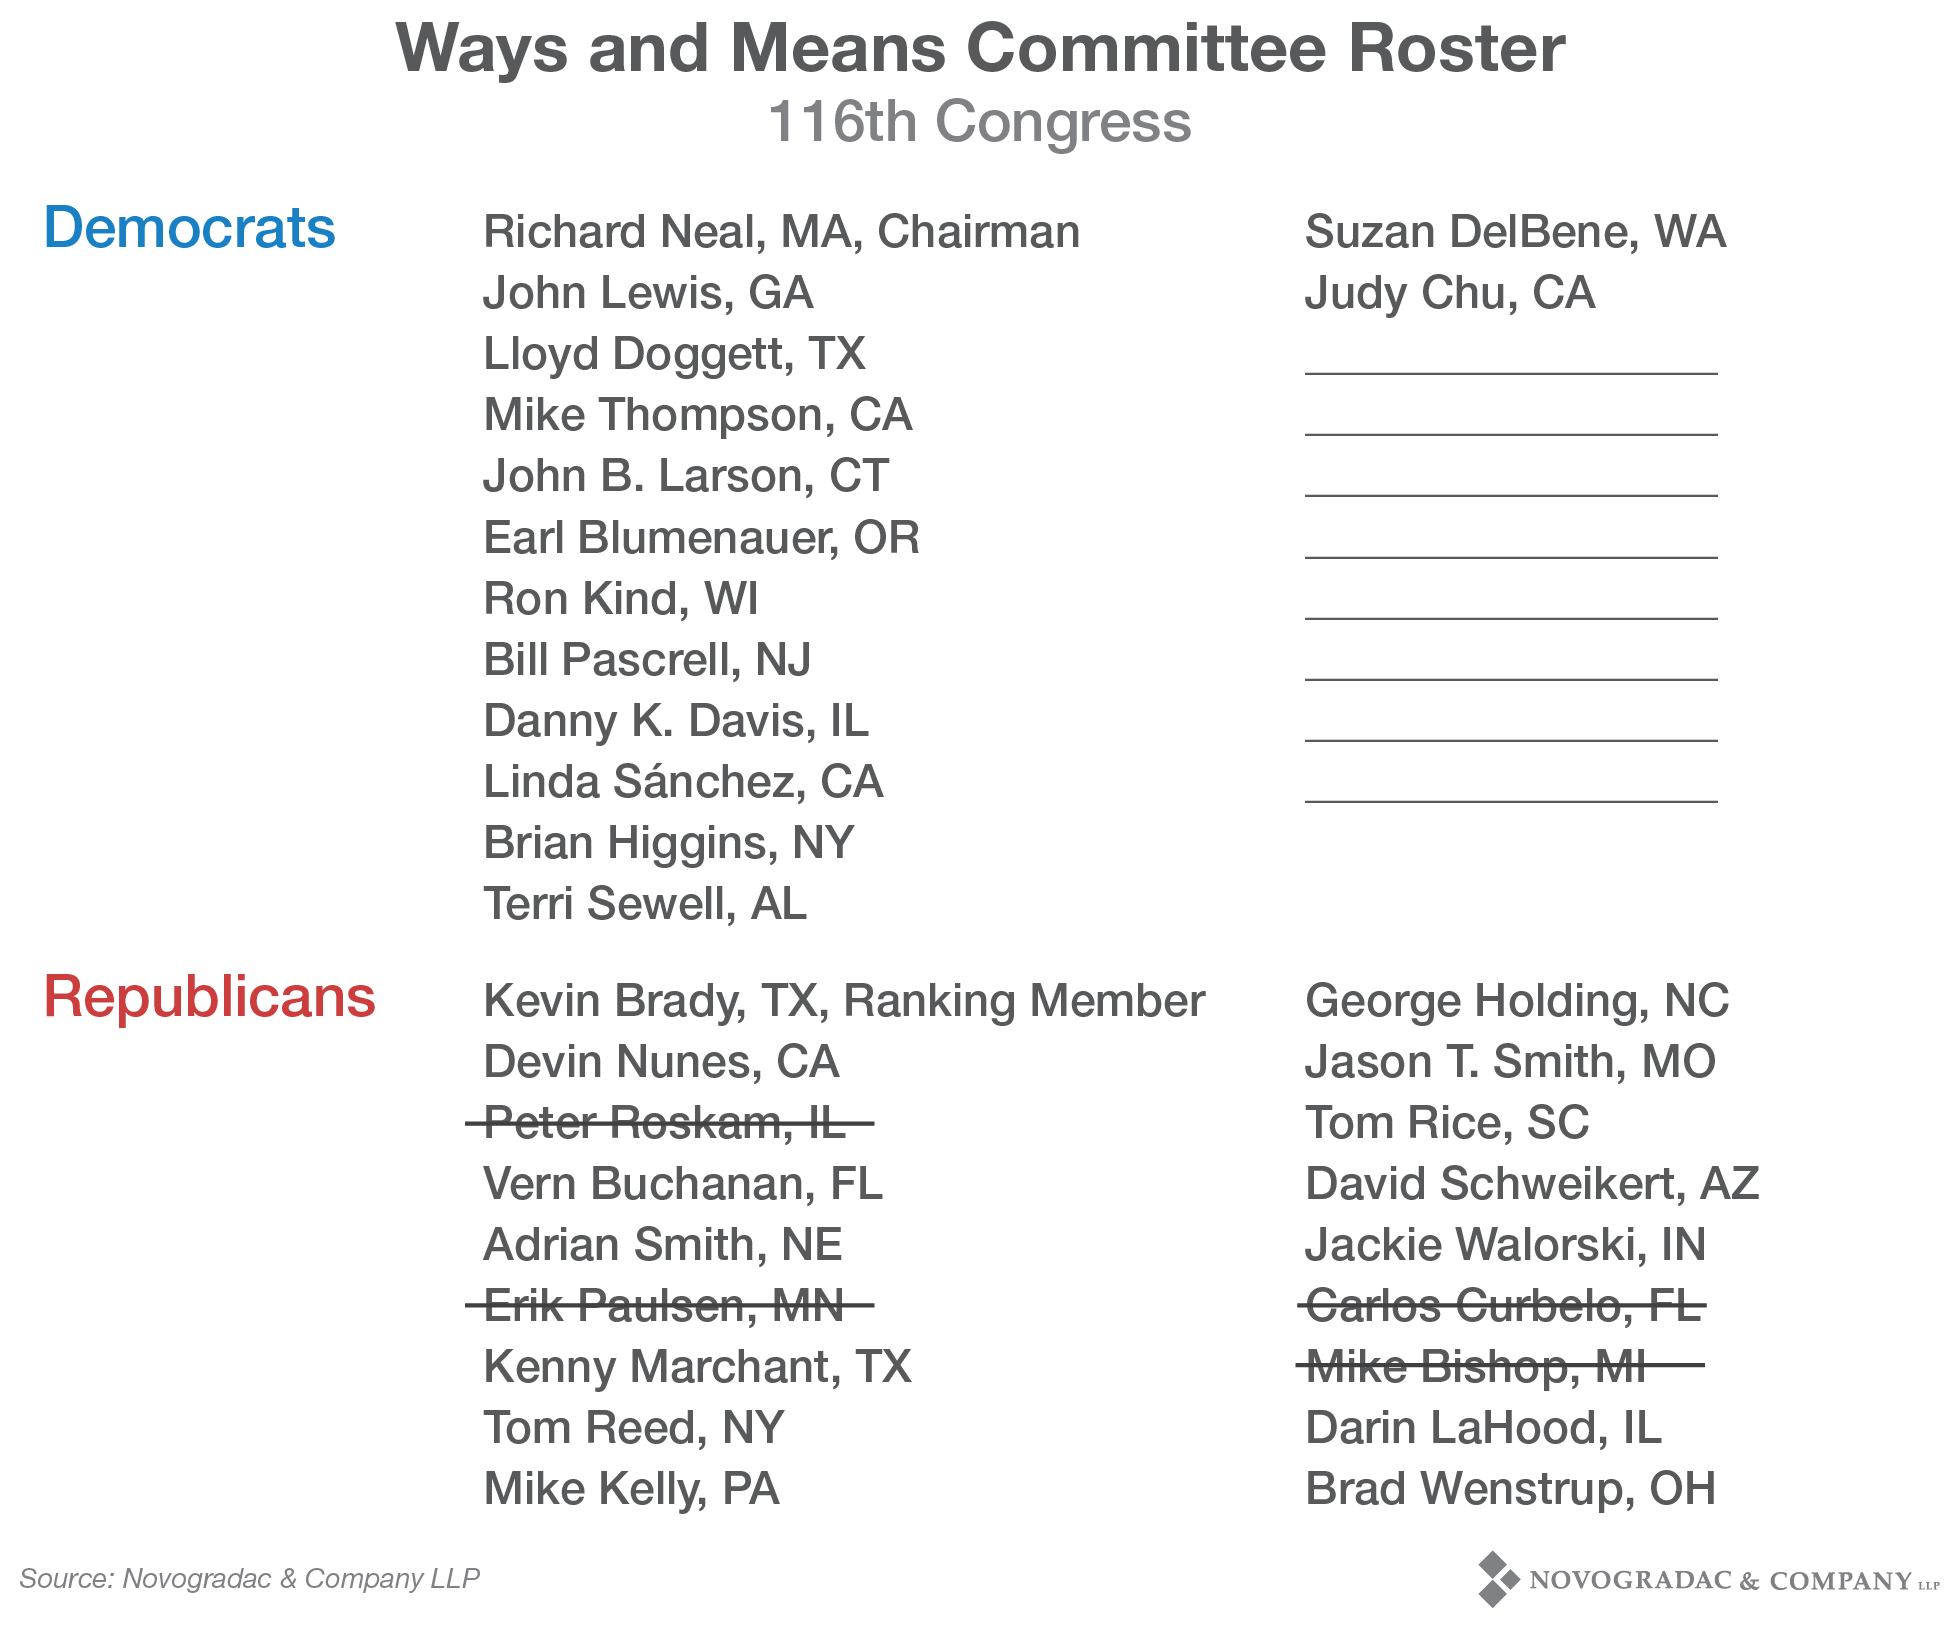 Blog Image 2018 Election Ways and Means Committee Roster